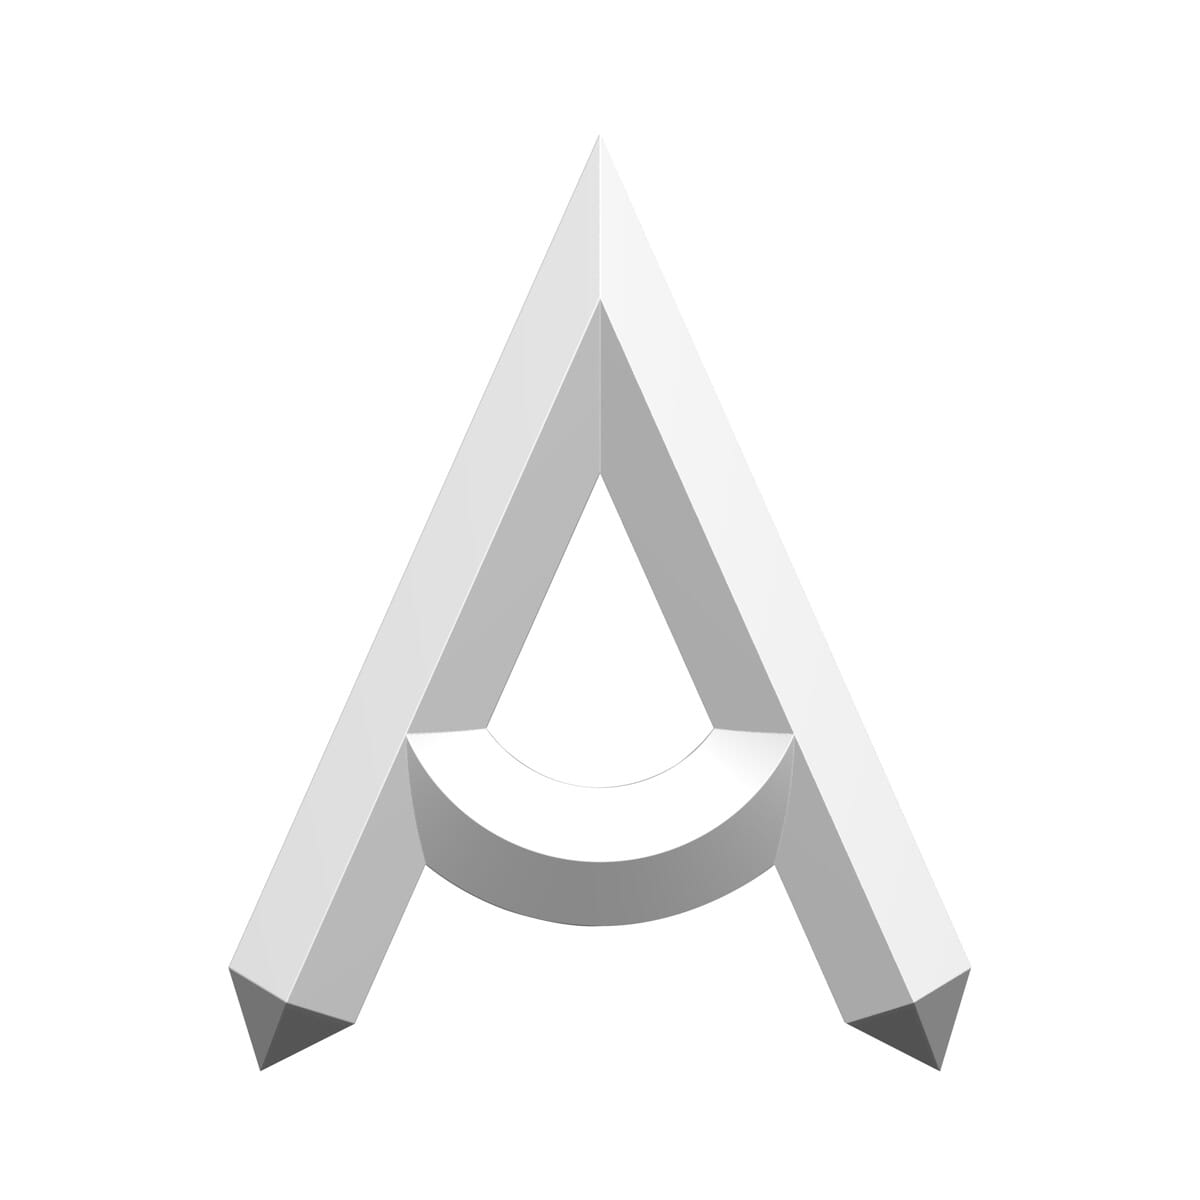 1/2-13 UNC x 2 inch Imperial Full Thread Carriage Bolts (ANSI B18.5) - Black A2 Stainless Steel Drawing